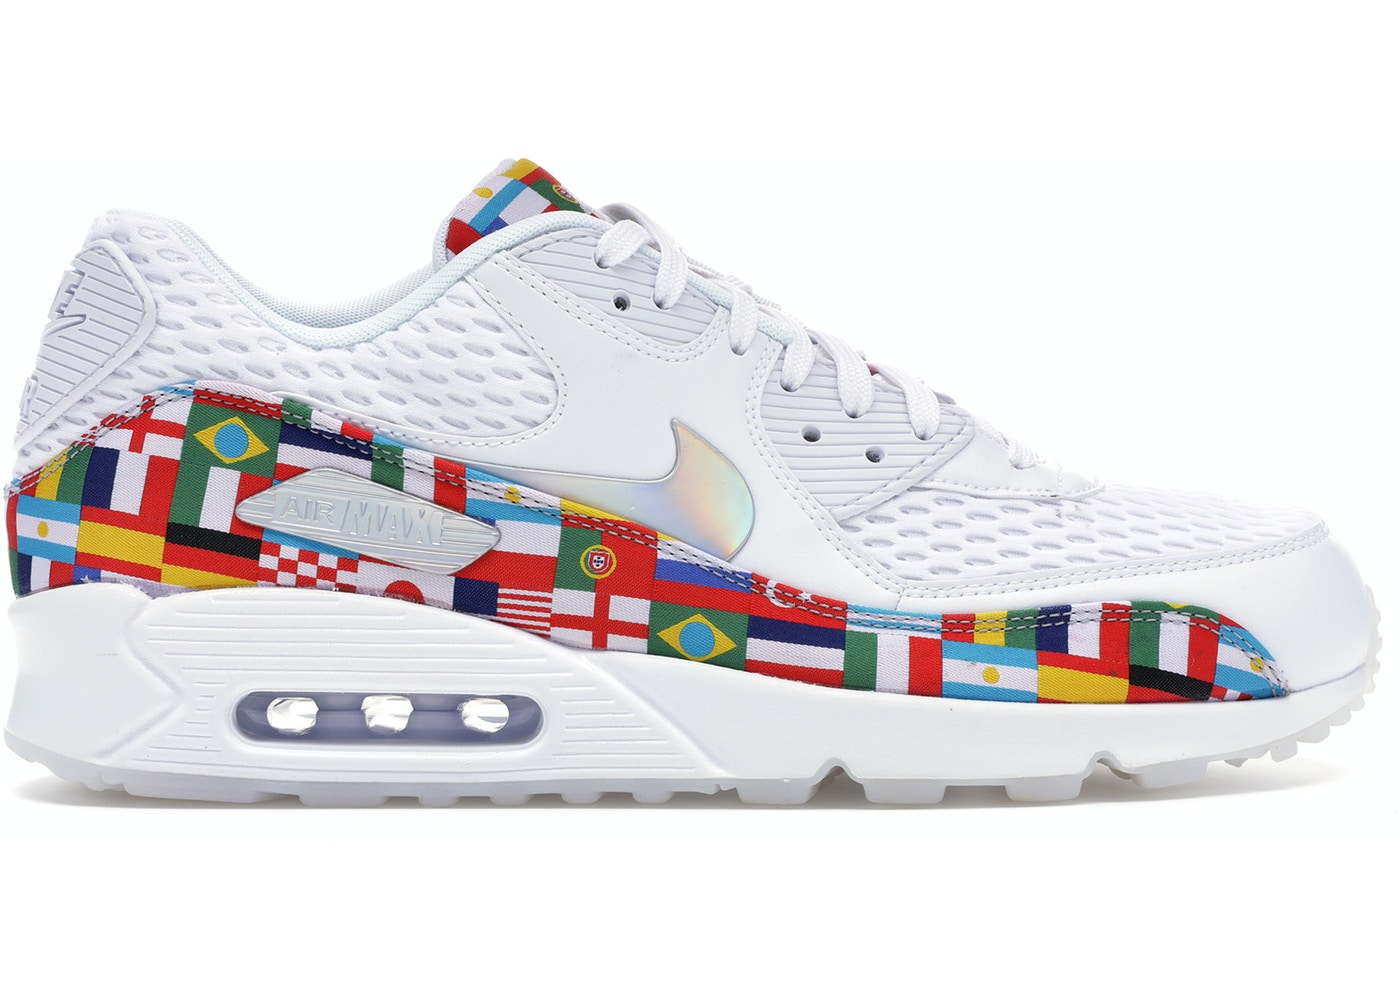 premium selection c8464 9b269 Air Max 90 NIC - AO5119-100